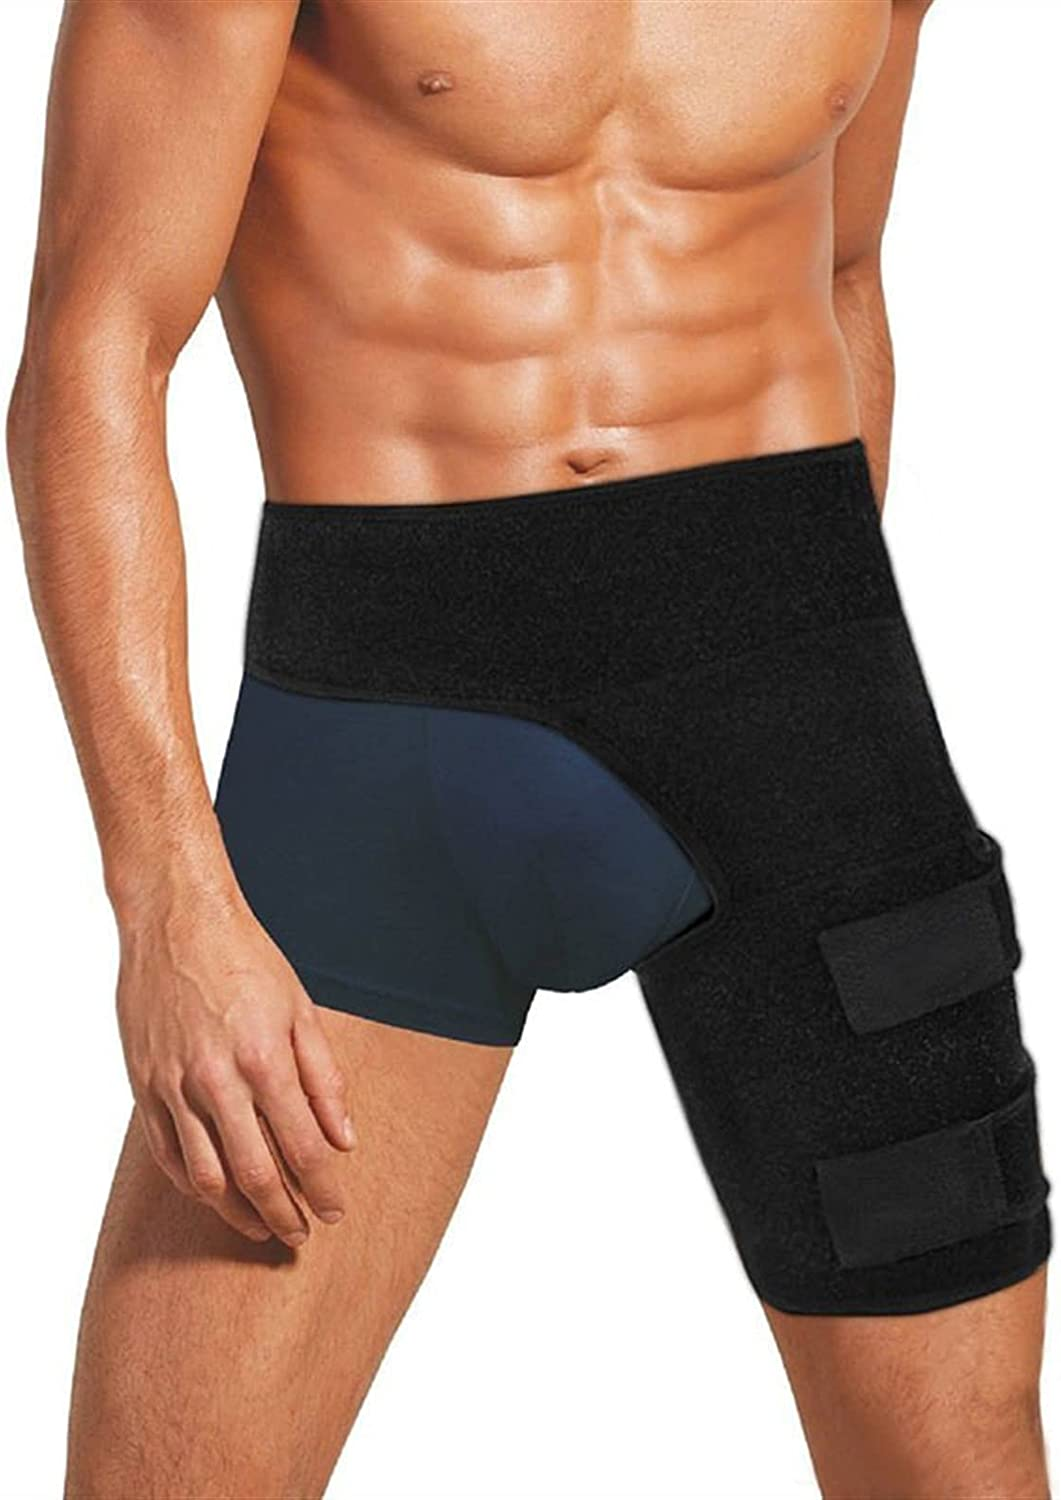 Hip Brace New Adjustable Groin Recovery OFFicial site Wrap Support Hamstring Mesa Mall